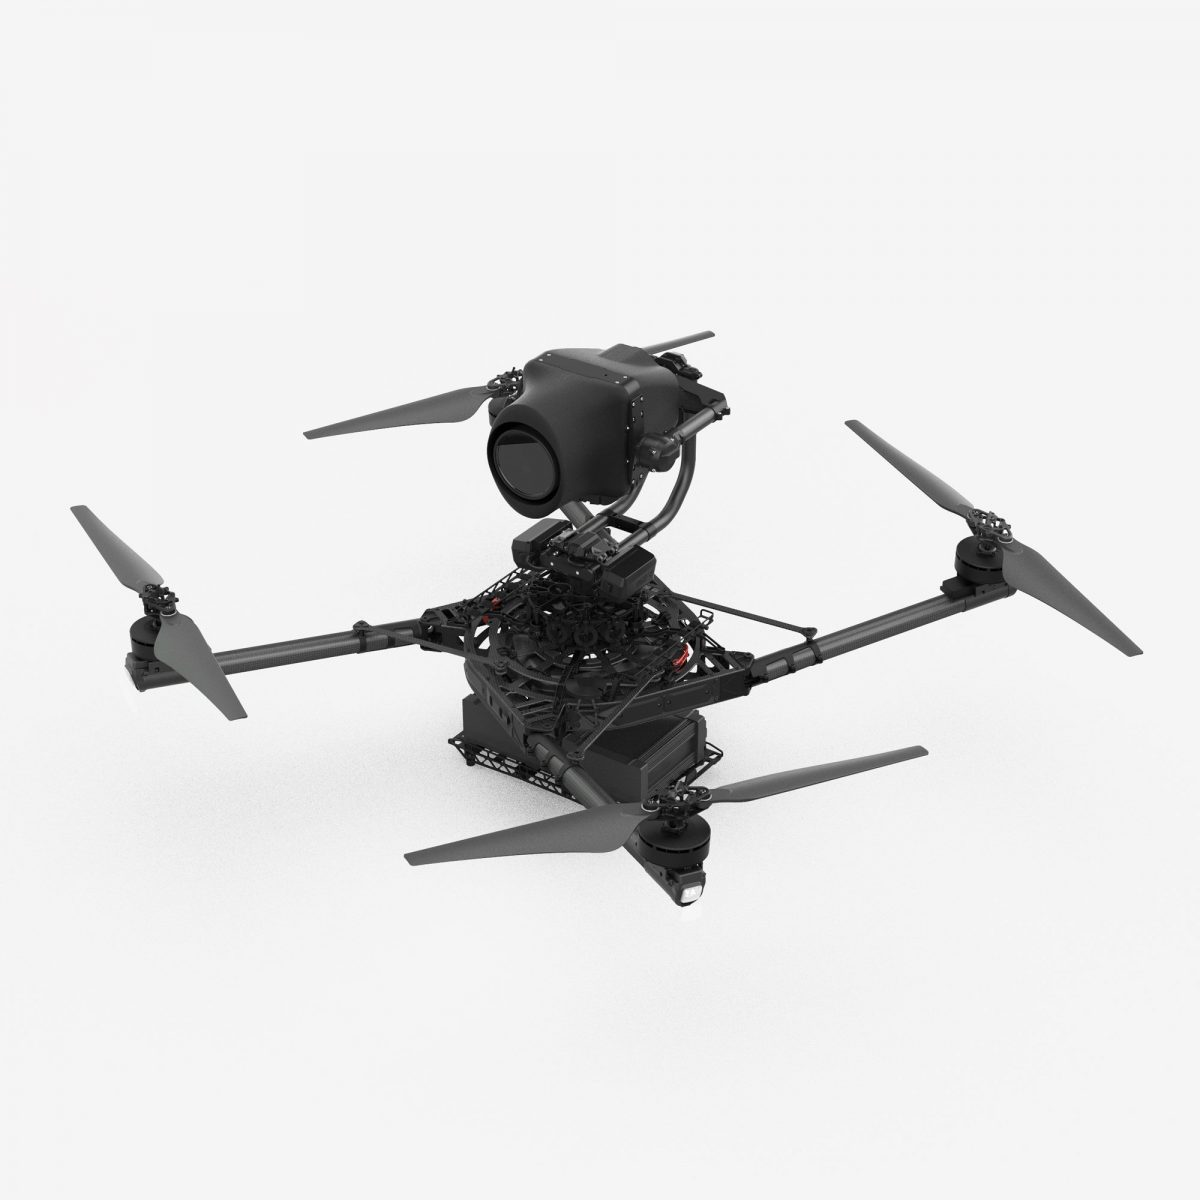 DroneBoy's Freefly ALTA X in SkyView